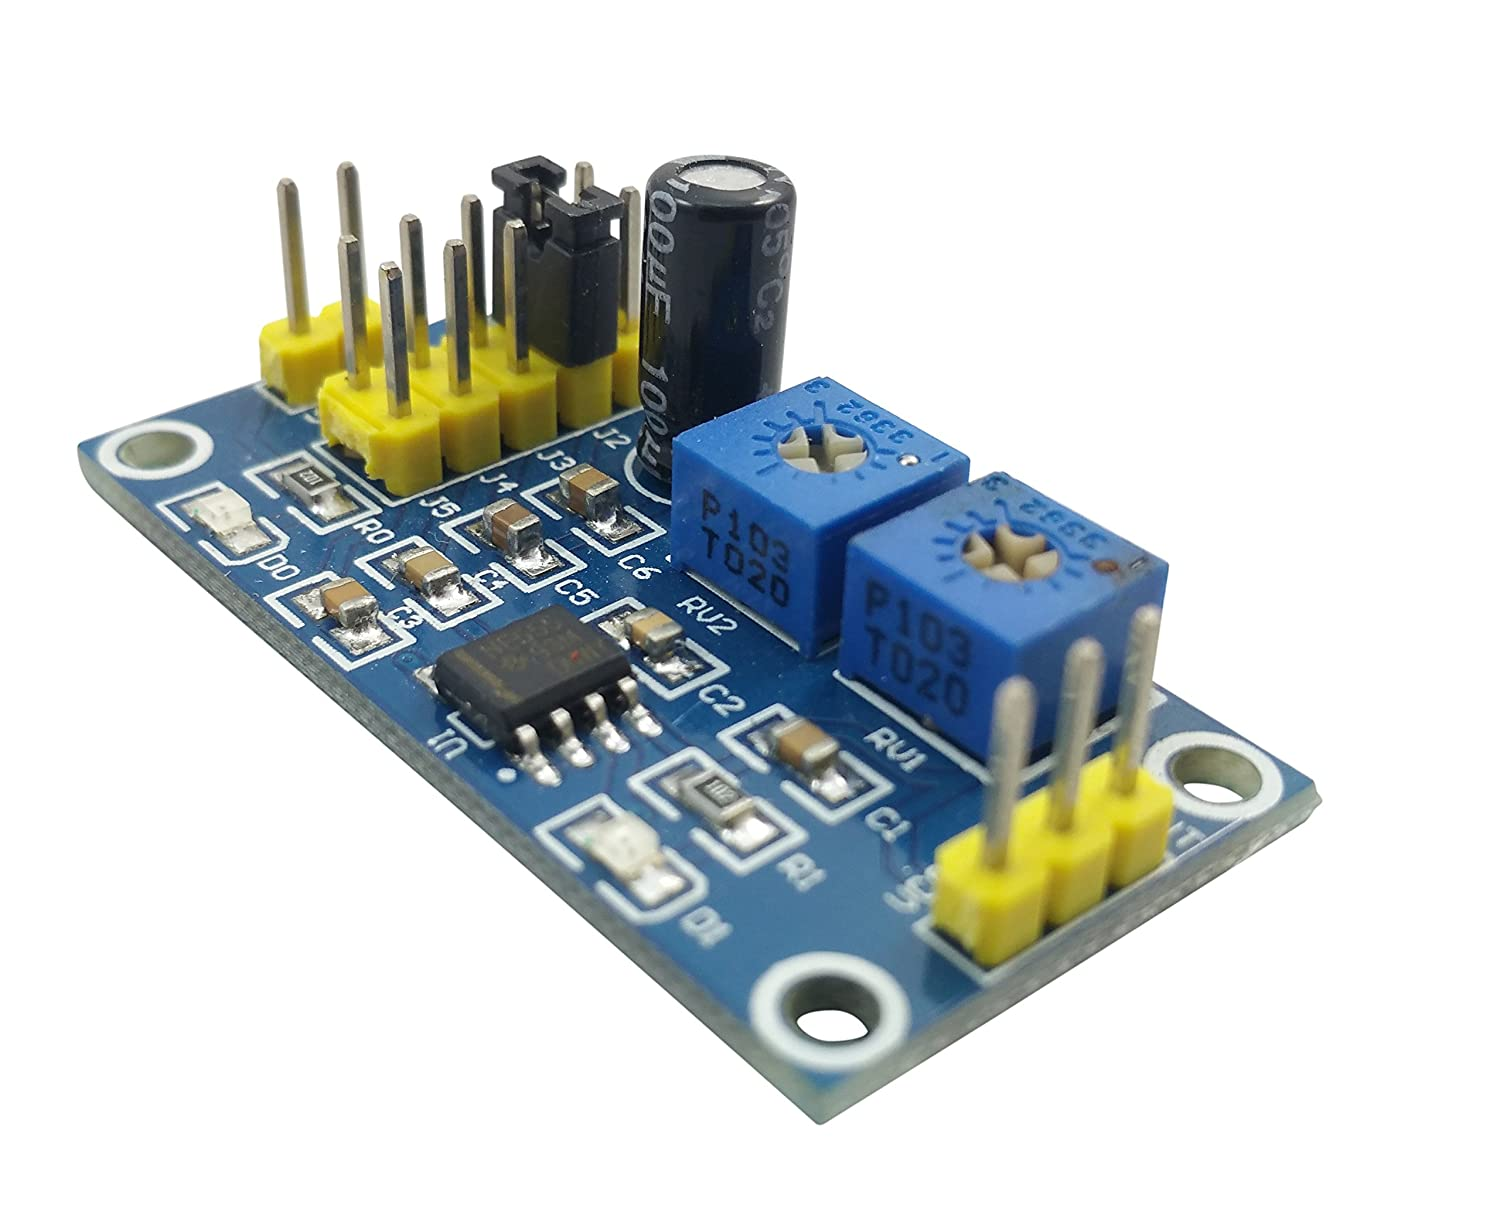 Initeq 2 Pack Ne555 555 Timer Breakout Module Ic Ne555p Dip 8 Timers New High Quality Integrated Circuit Adjustable Square Wave Pulse Generator Shield Industrial Scientific